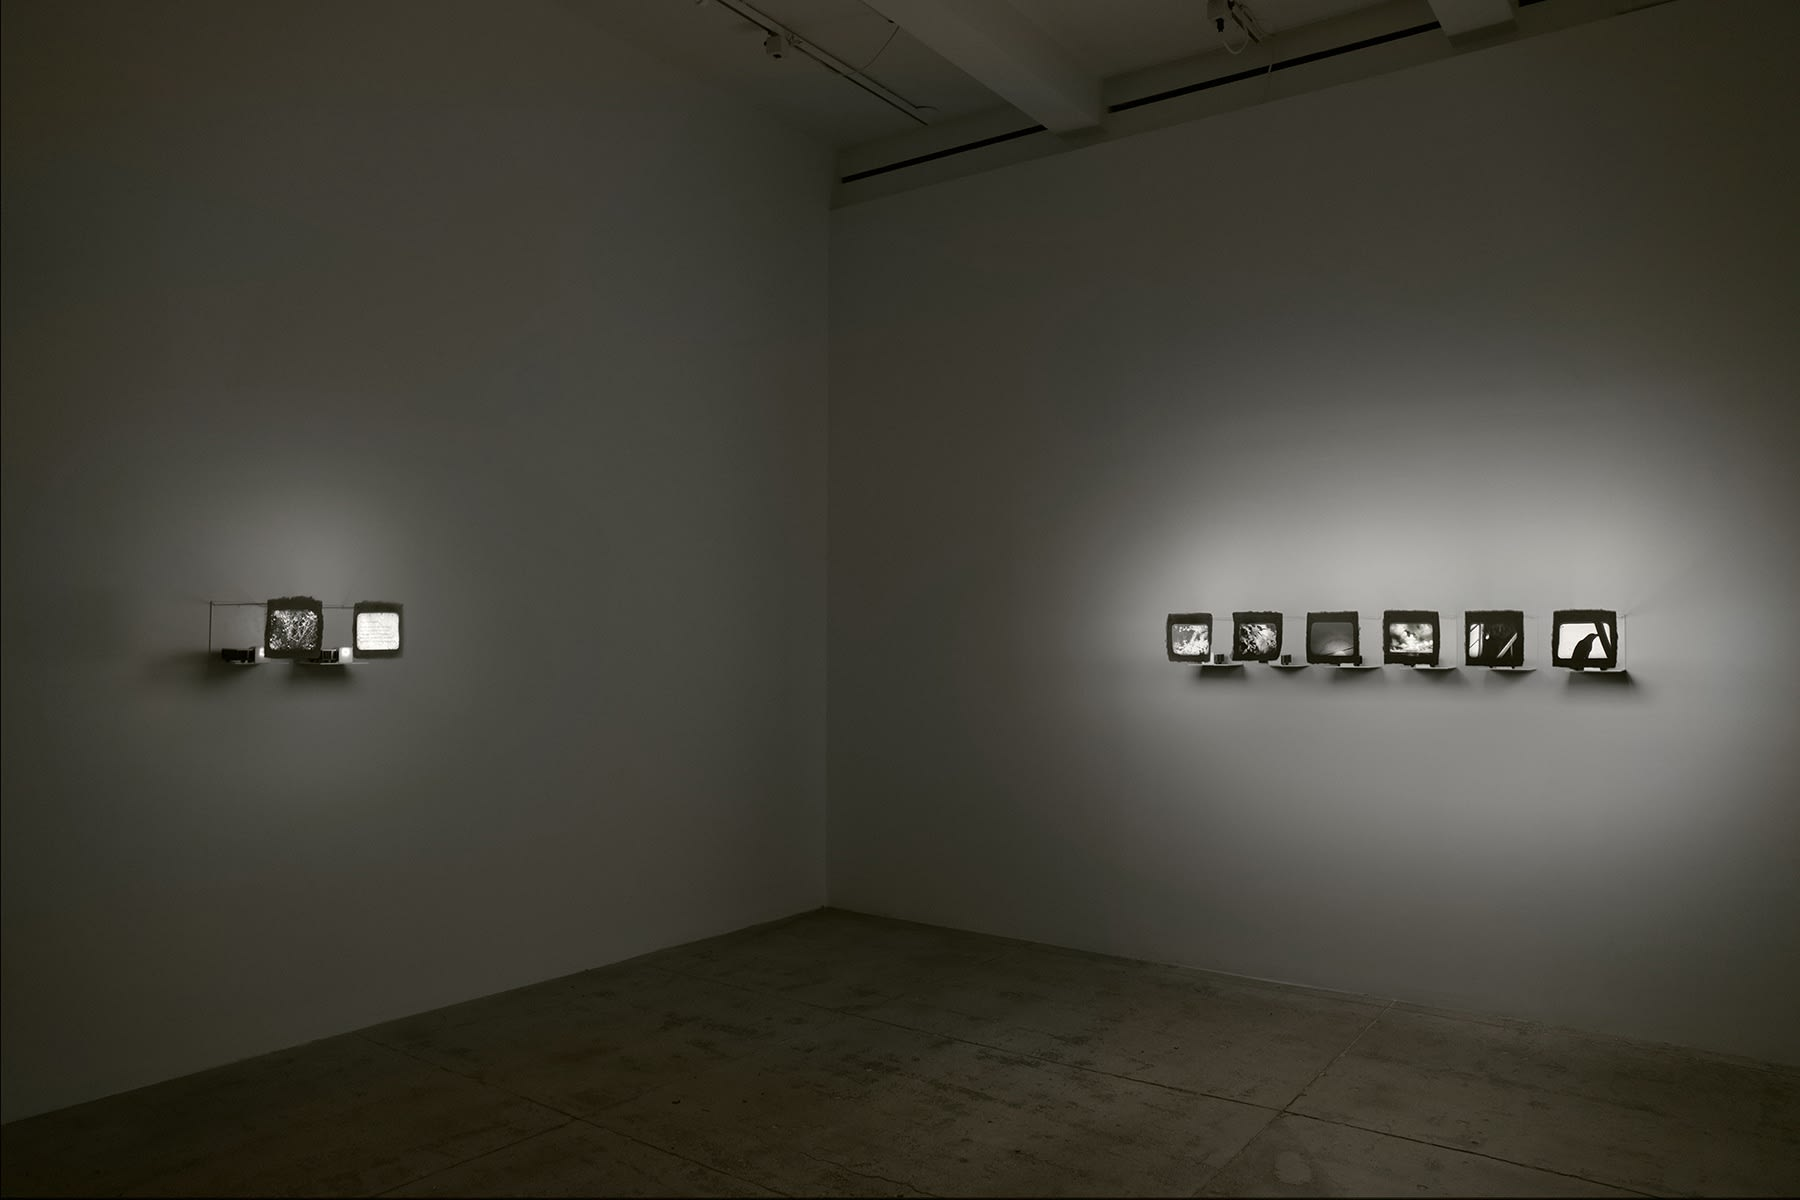 Eight small projected behind various fabrics and plates illuminate a dimly lit room.